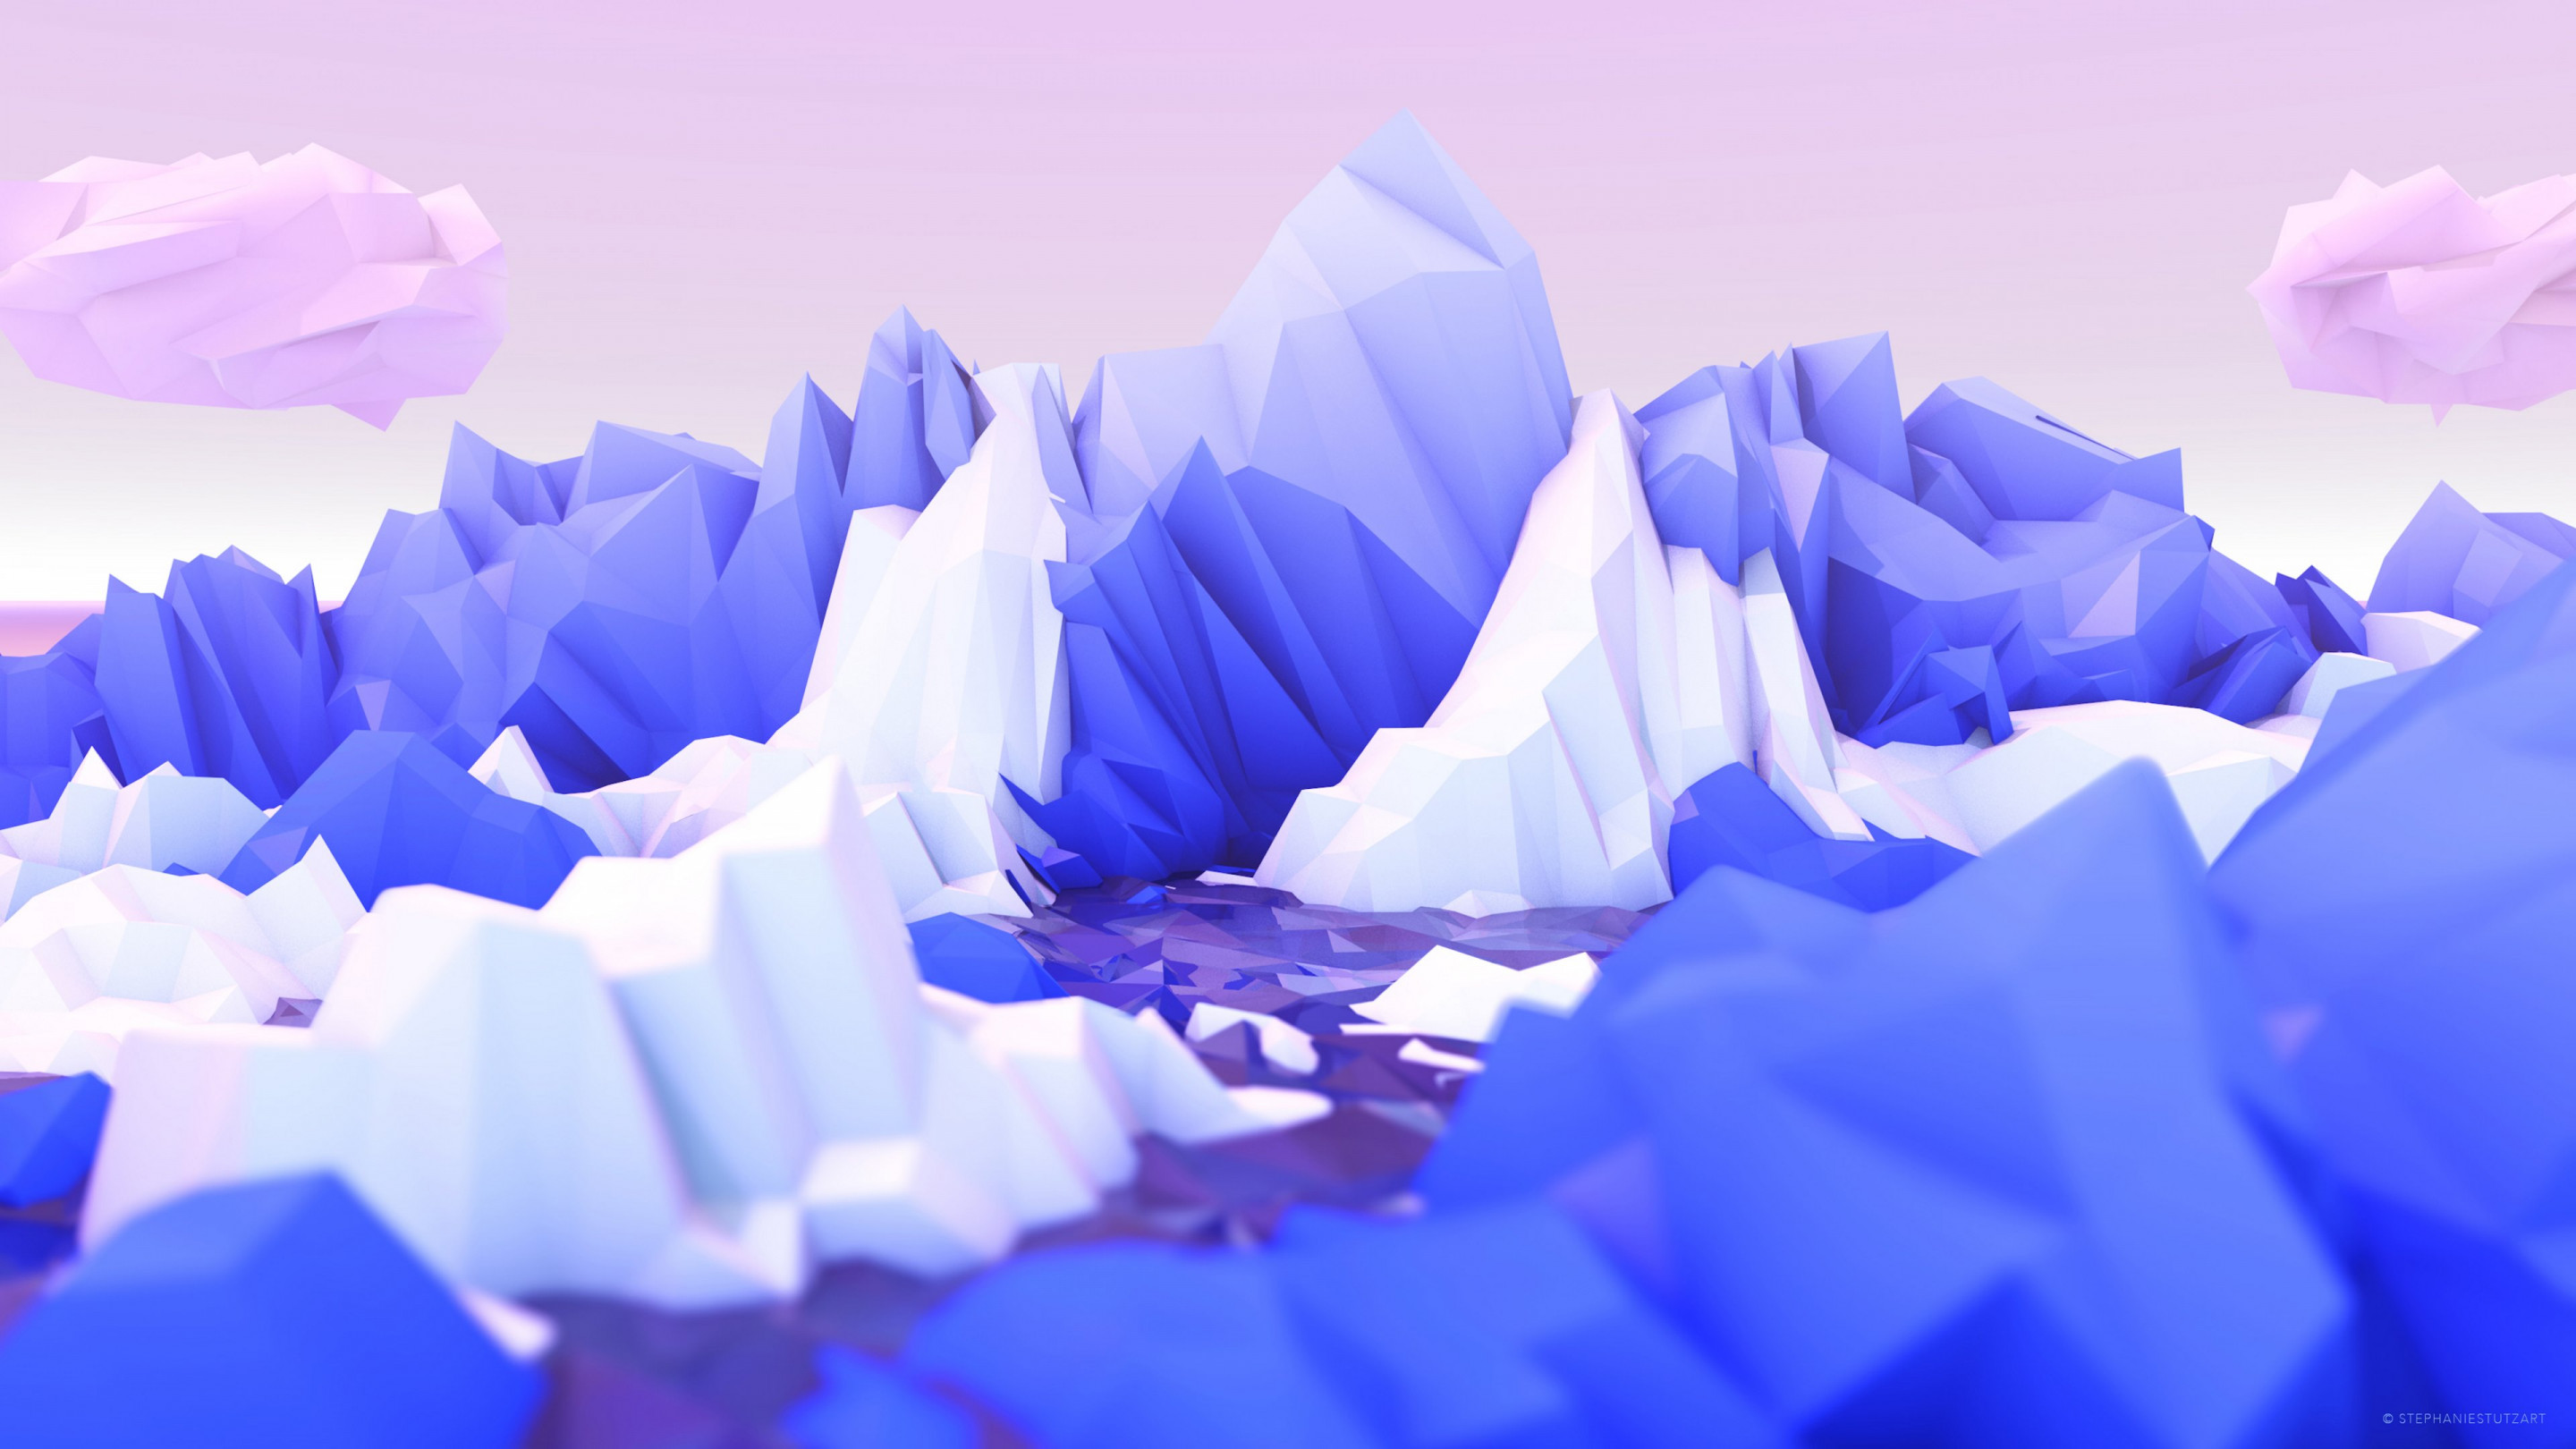 Low poly graphic design wallpaper 2880x1620